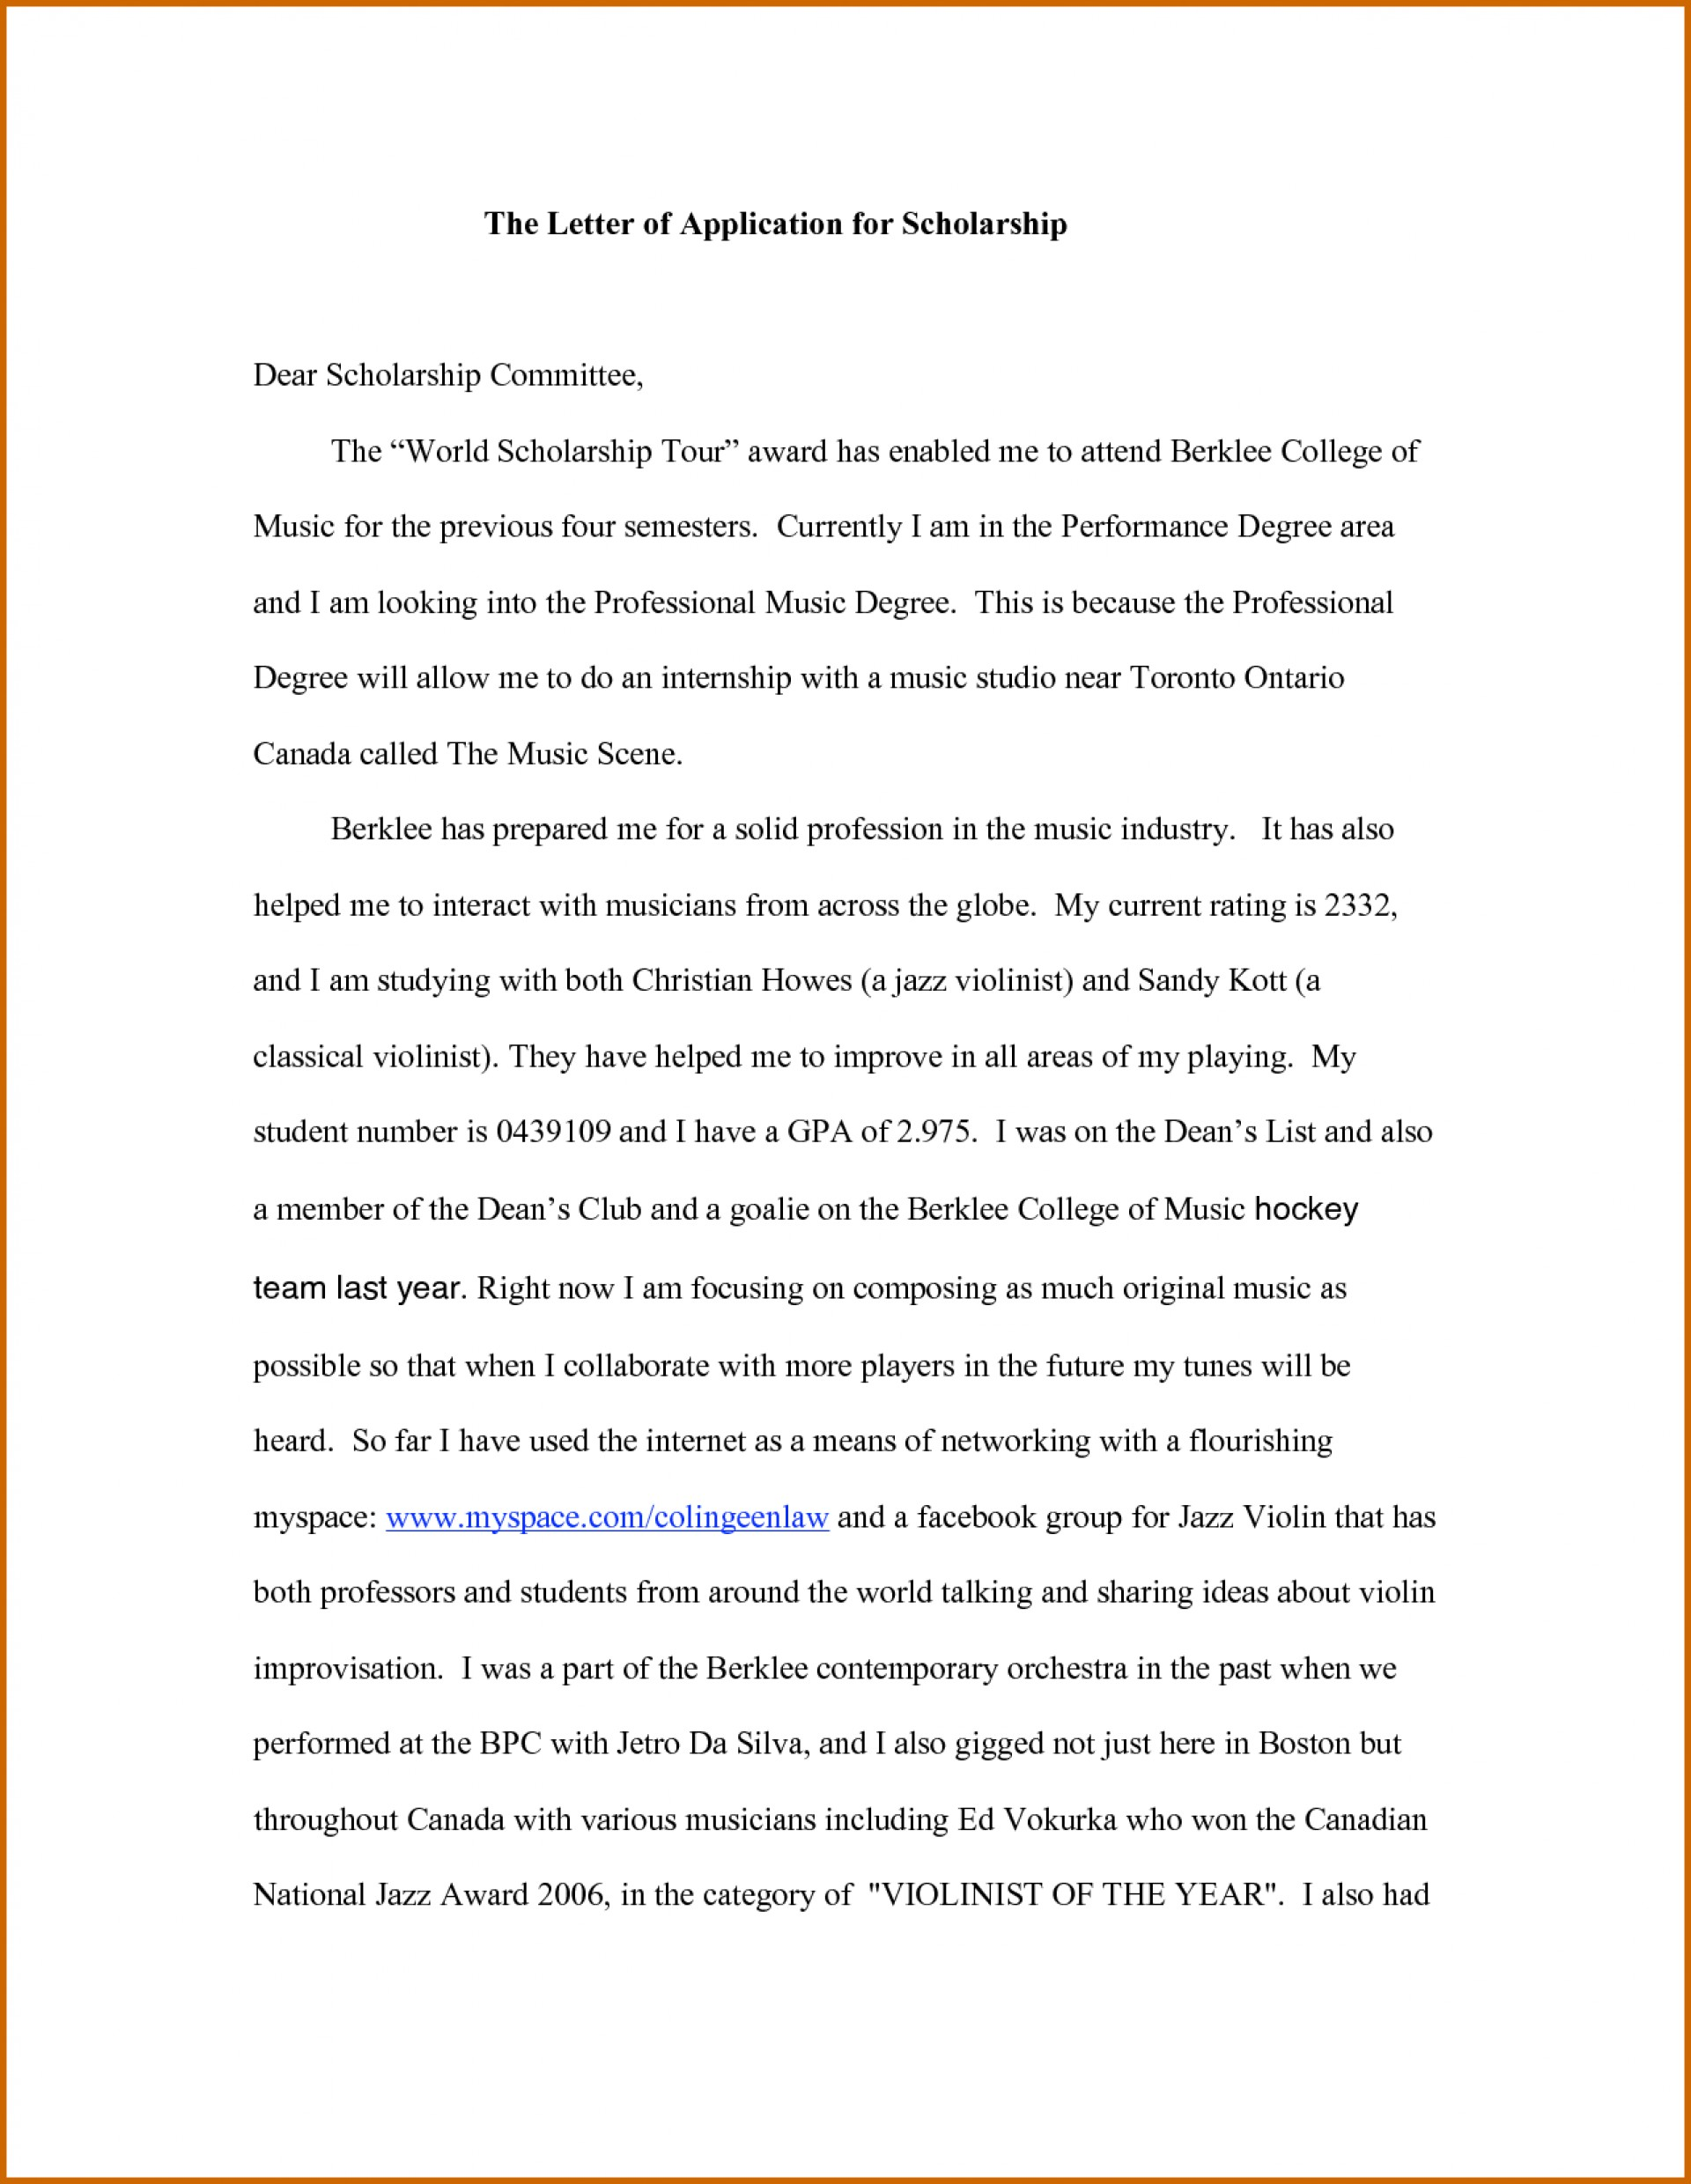 007 Scholarships Without Essay Example How To Write Application For Scholarship Astounding Essays 2019 2018 1920